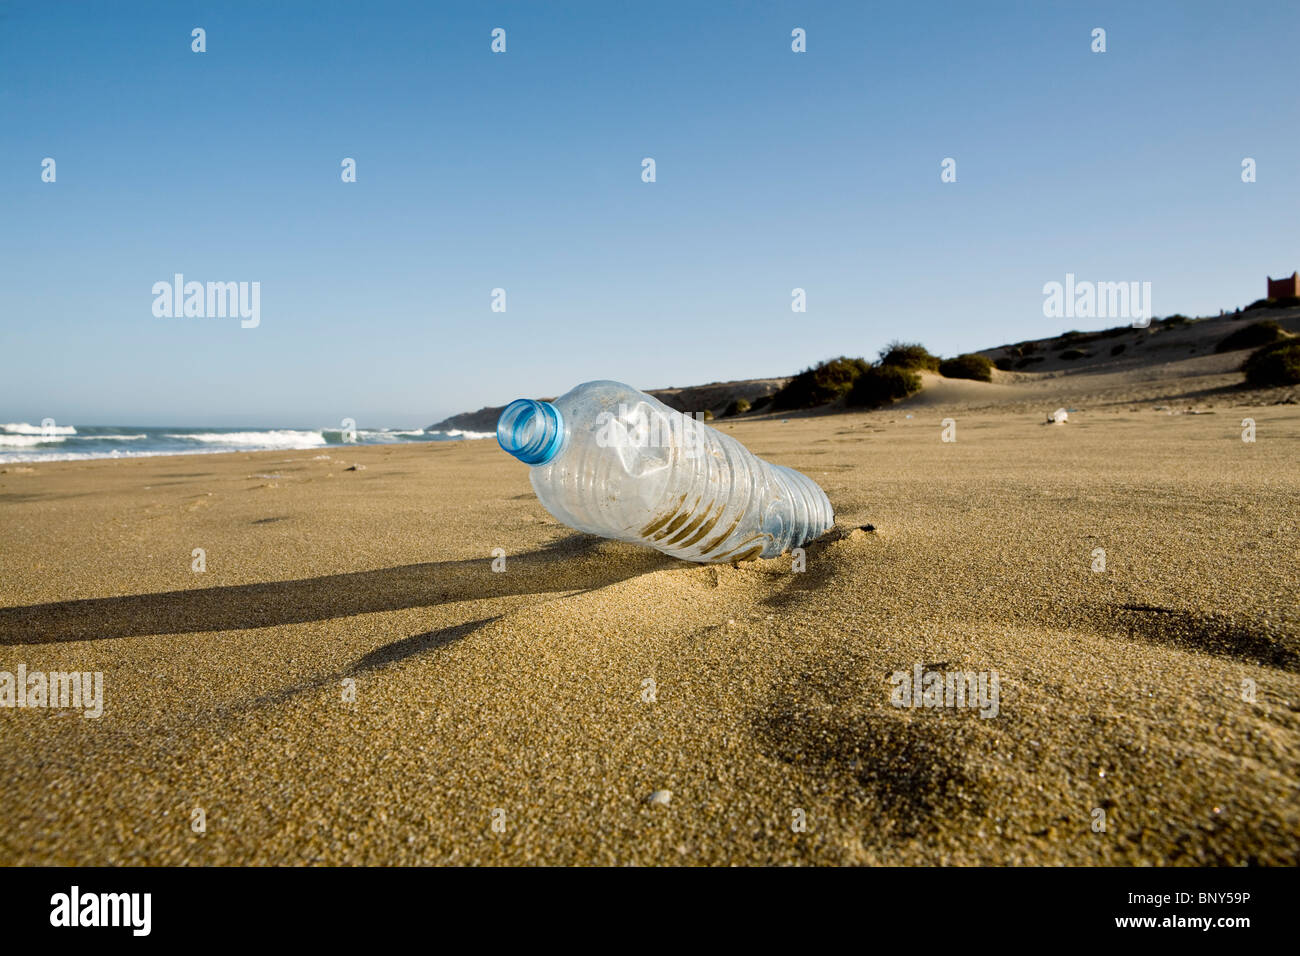 Plastic water bottle abandoned on beach, Souss-Massa National Park, Morocco - Stock Image